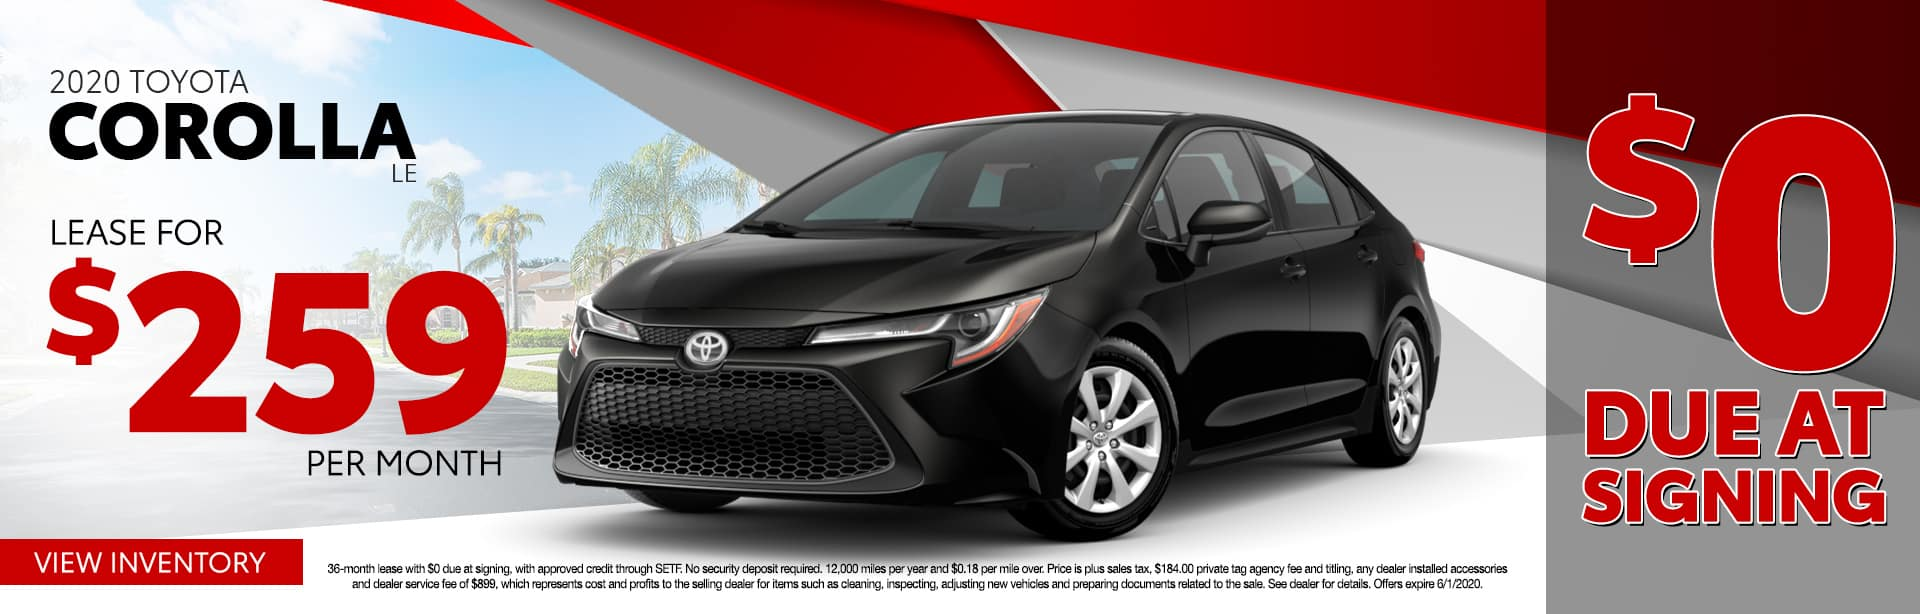 2020 Toyota Corolla LE | Lease For $259 Per Month $0 Due At Signing